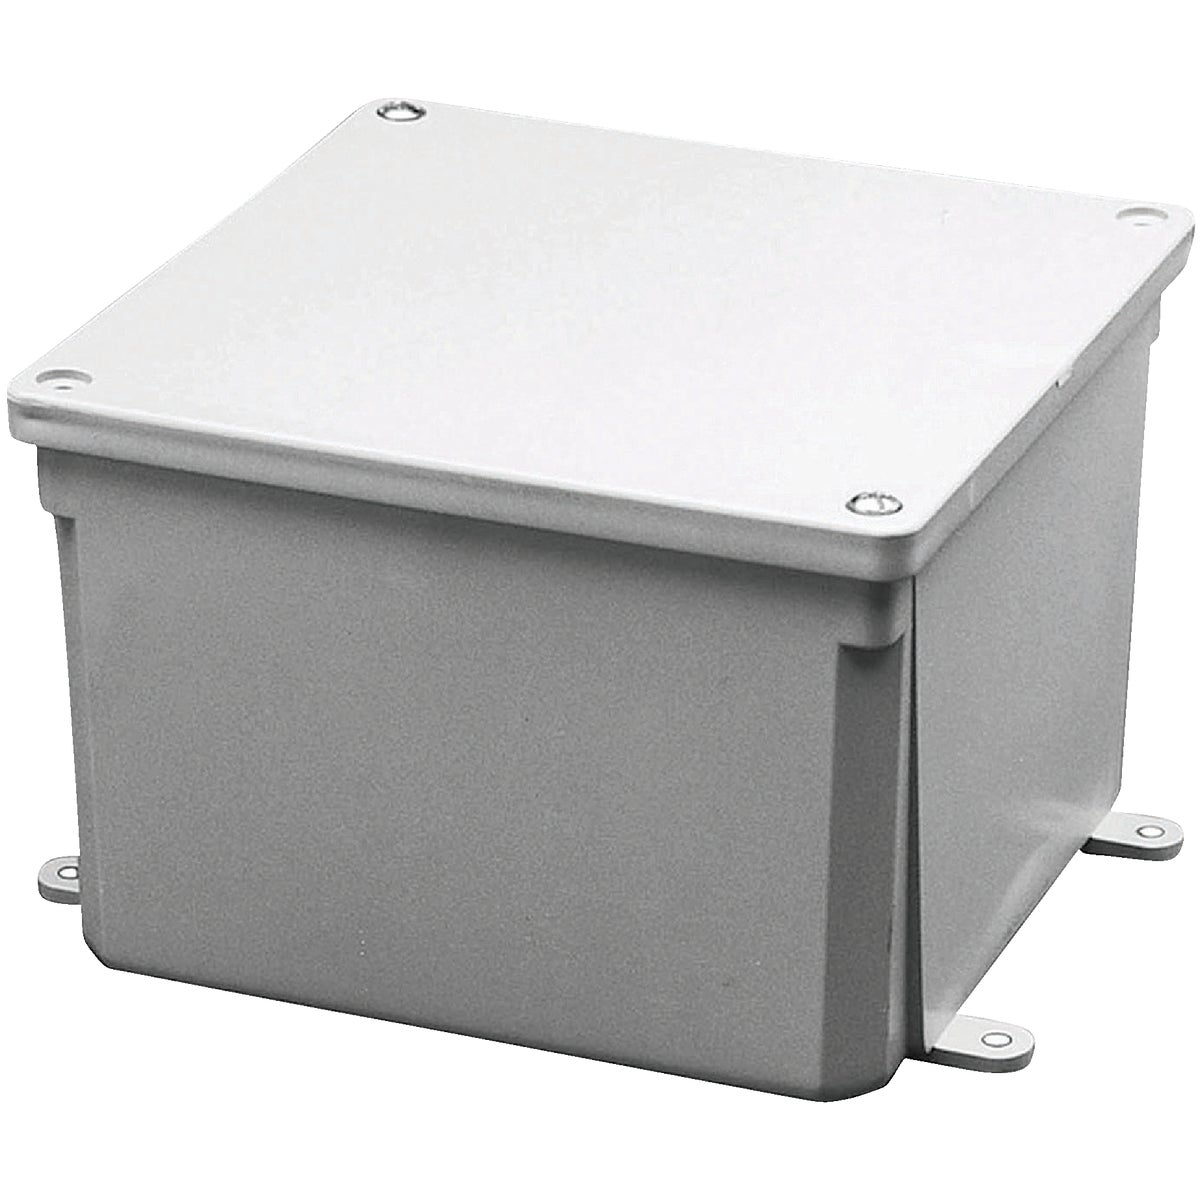 12 X 12 X 6 JUNCTION BOX